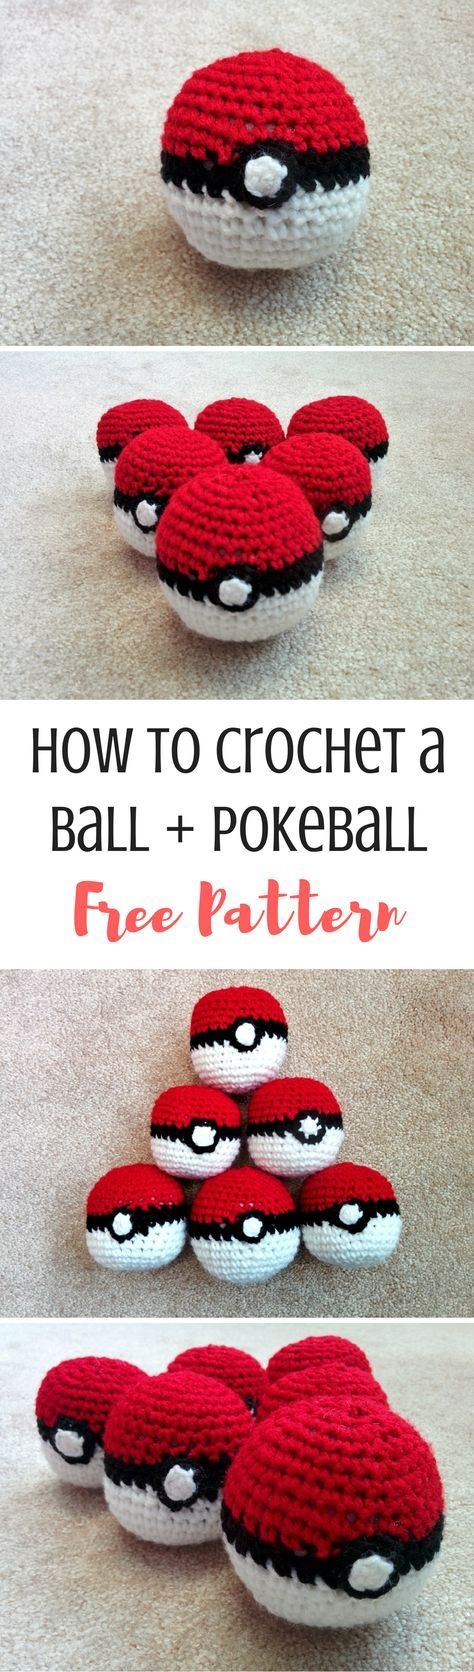 How to crochet a ball, and how to turn it into a crochet pokeball! Get the free pattern and tutorial here